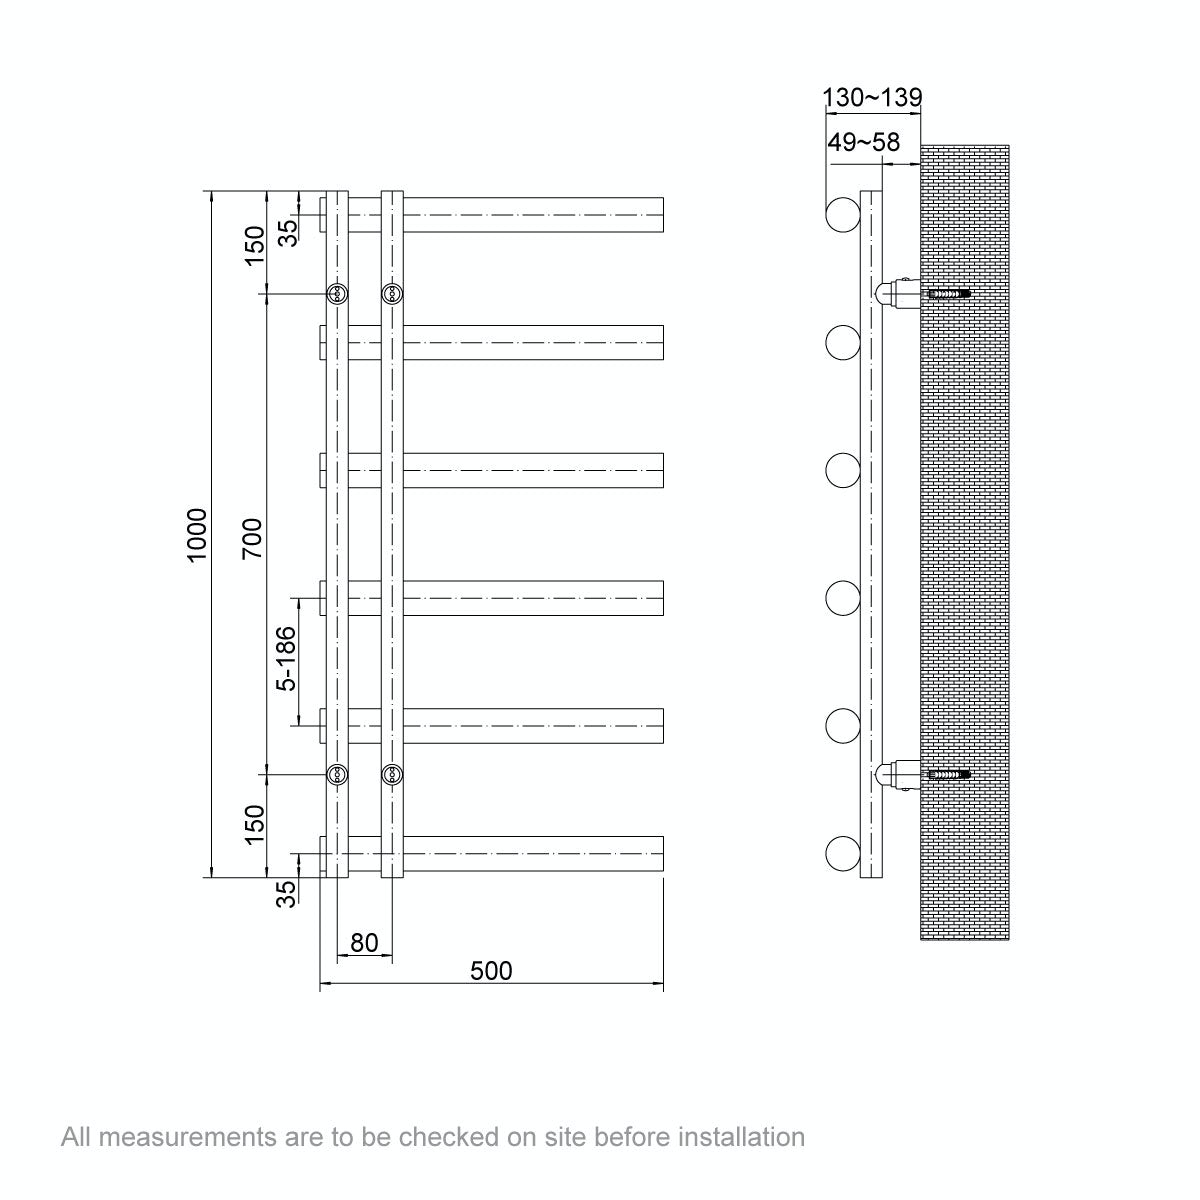 Dimensions for Mode Hardy heated towel rail 1000 x 500